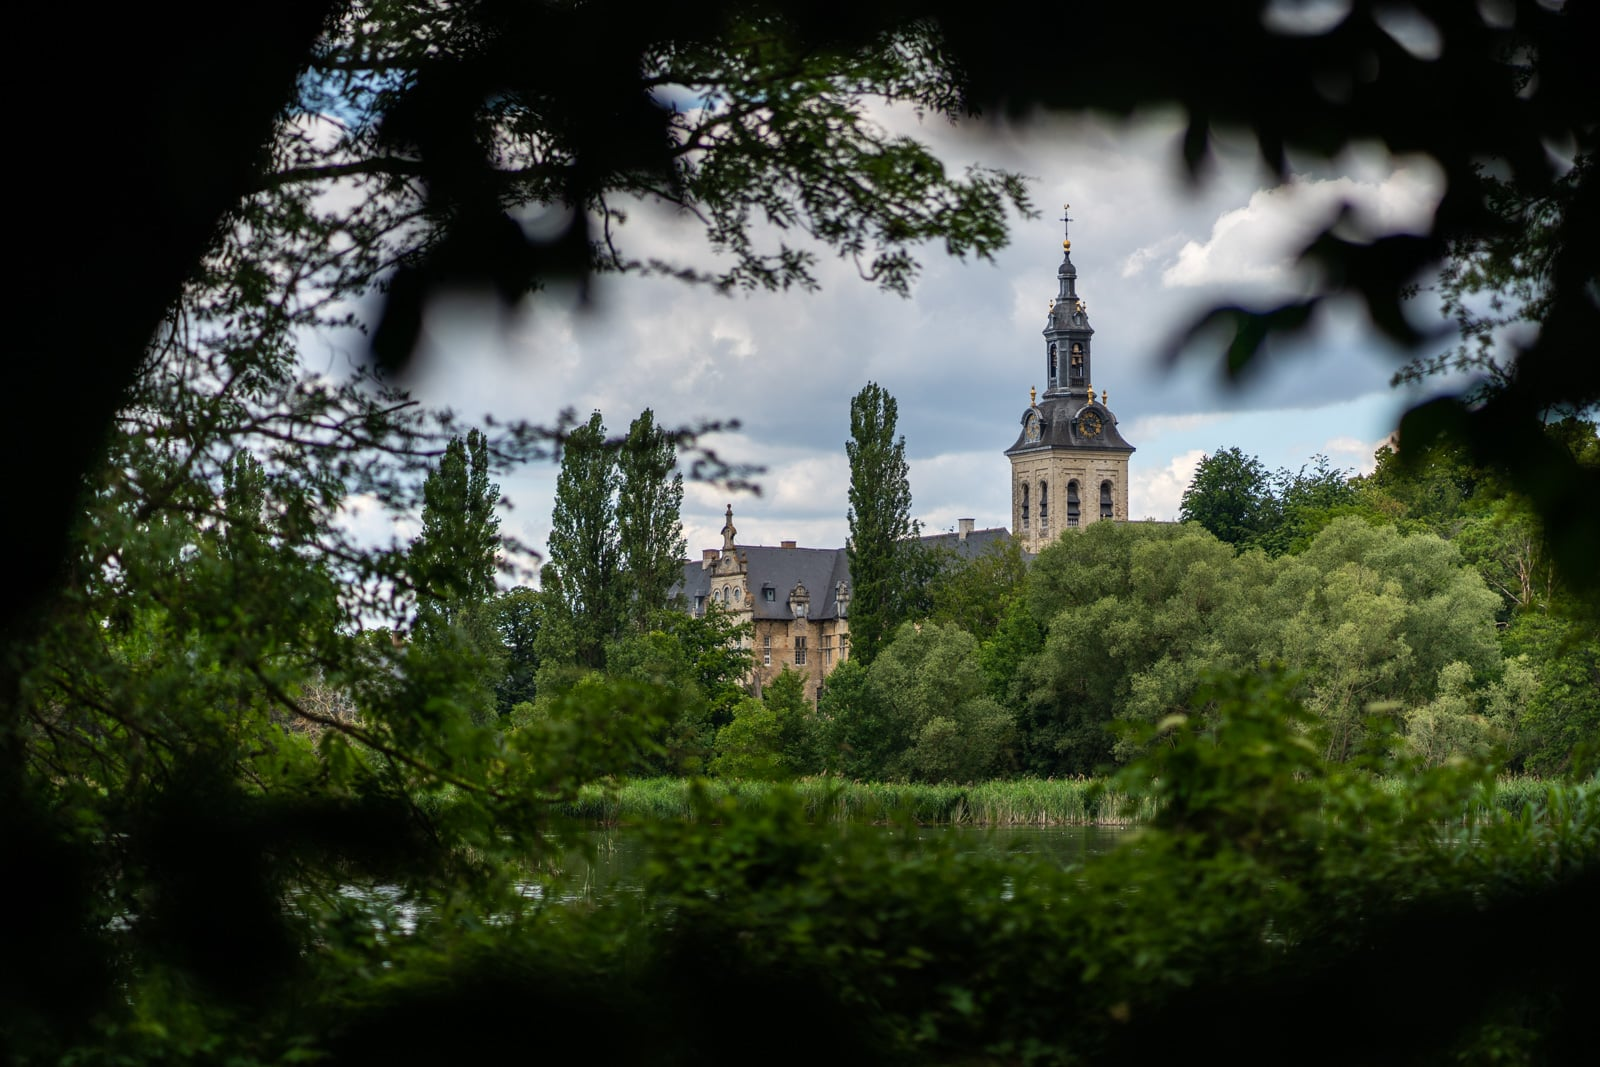 Park Abbey through the trees in Heverlee, Flemish Brabant, Belgum